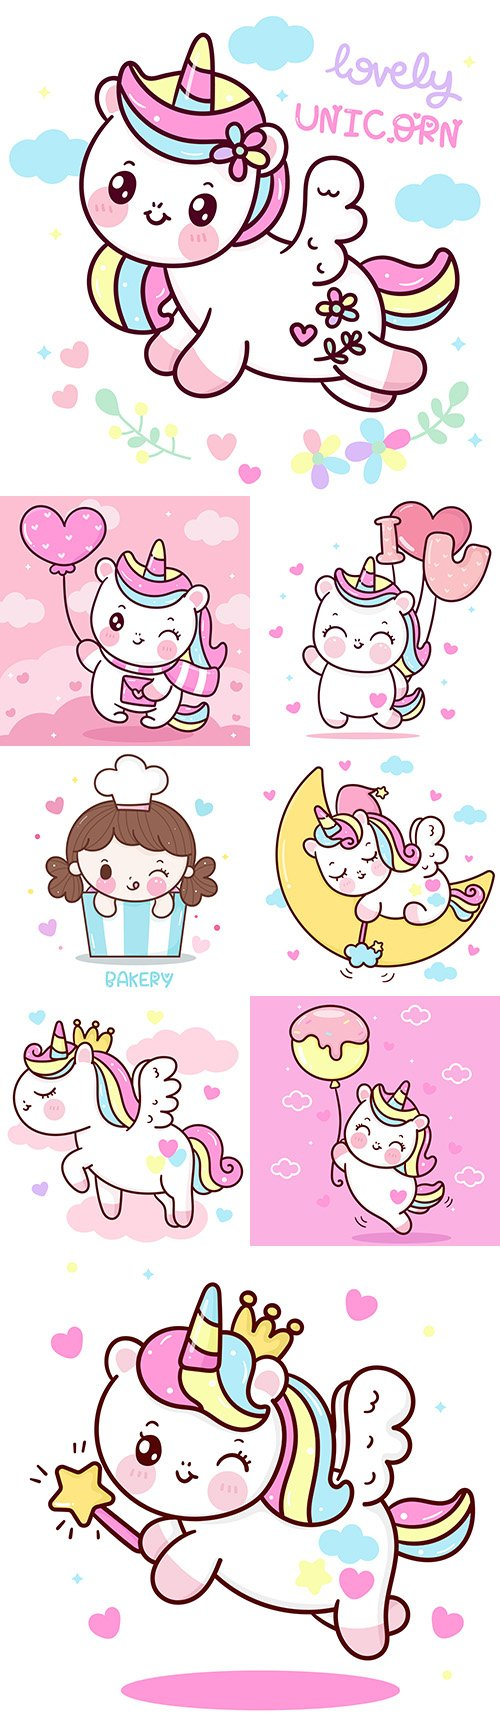 Cute unicorn princess cartoon on cloud painted illustrations